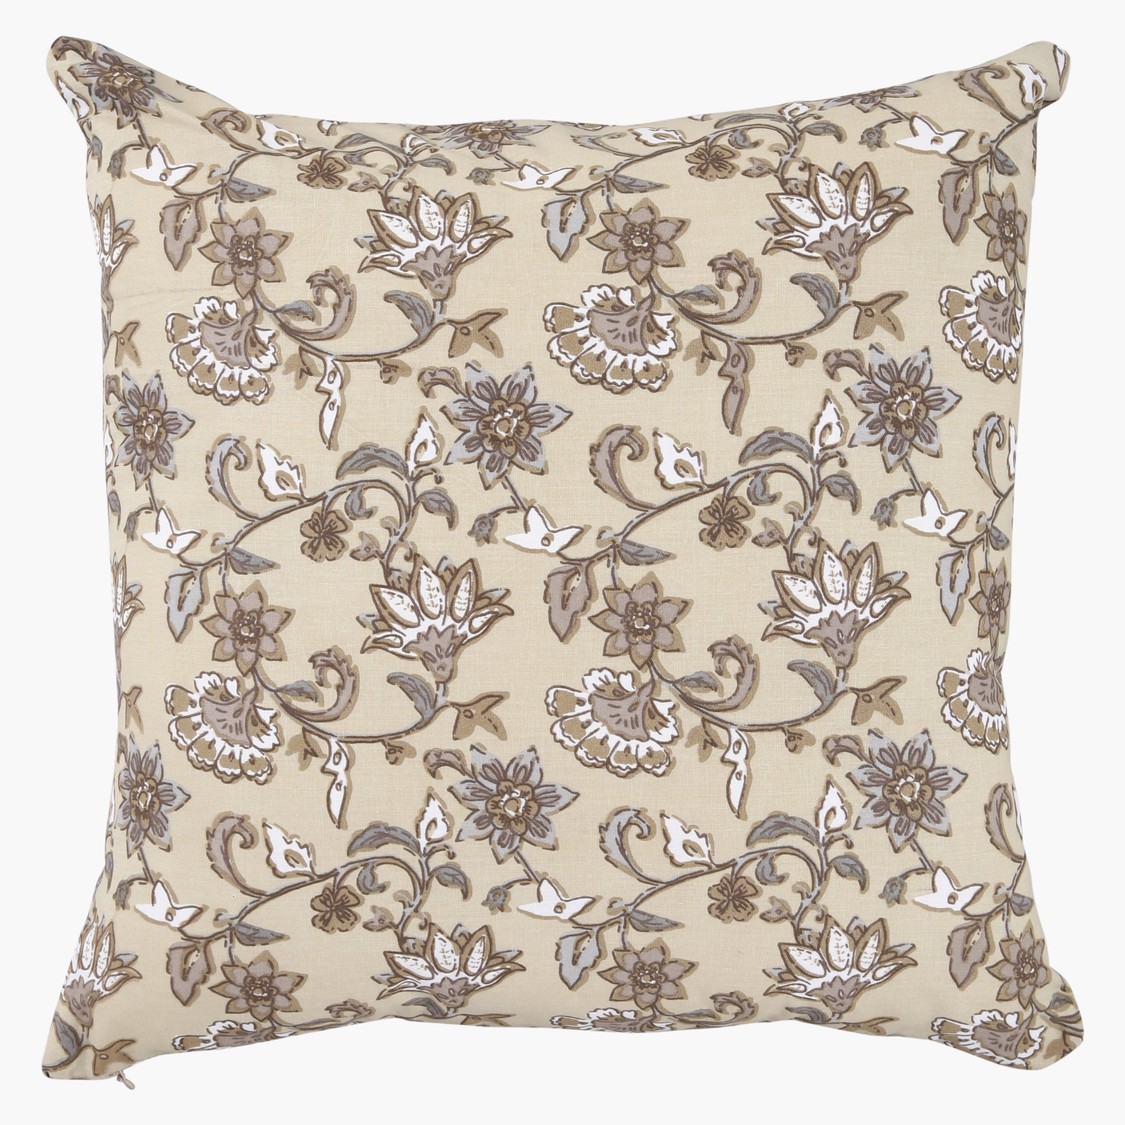 Printed Square Filled Cushion - 45x45cms